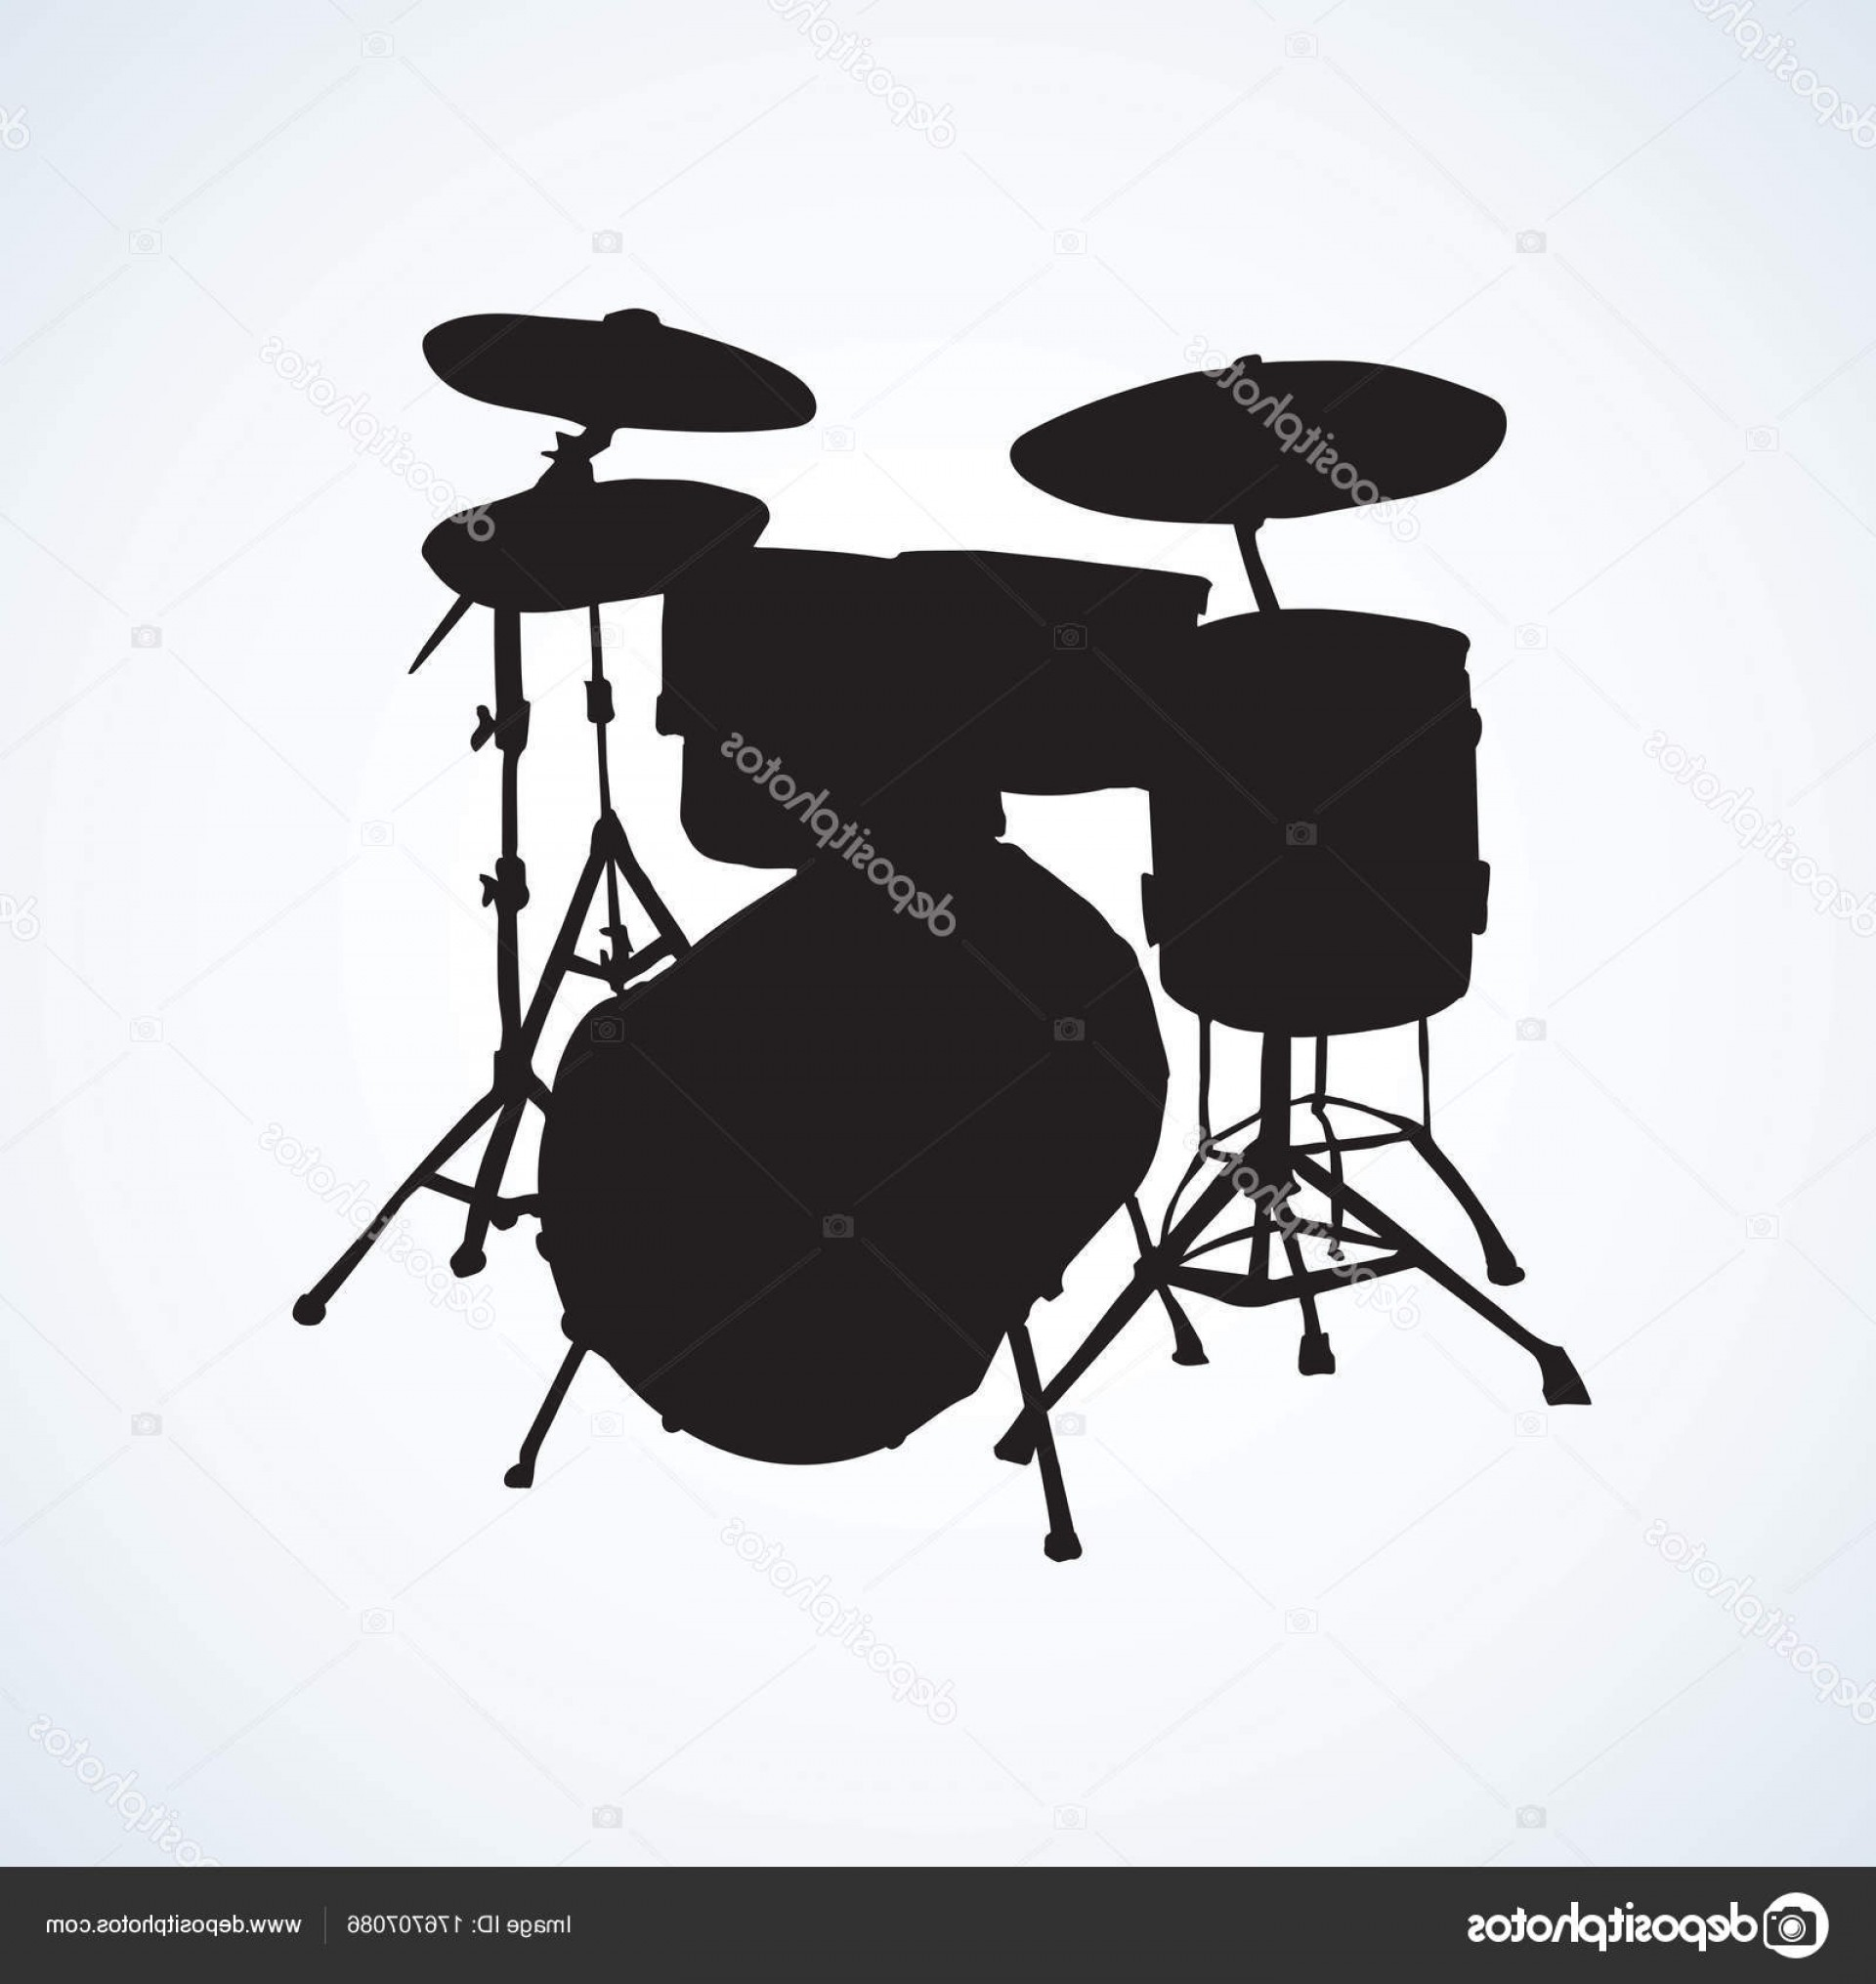 Kick Drum Vector: Stock Illustration African Drum Vector Drawing